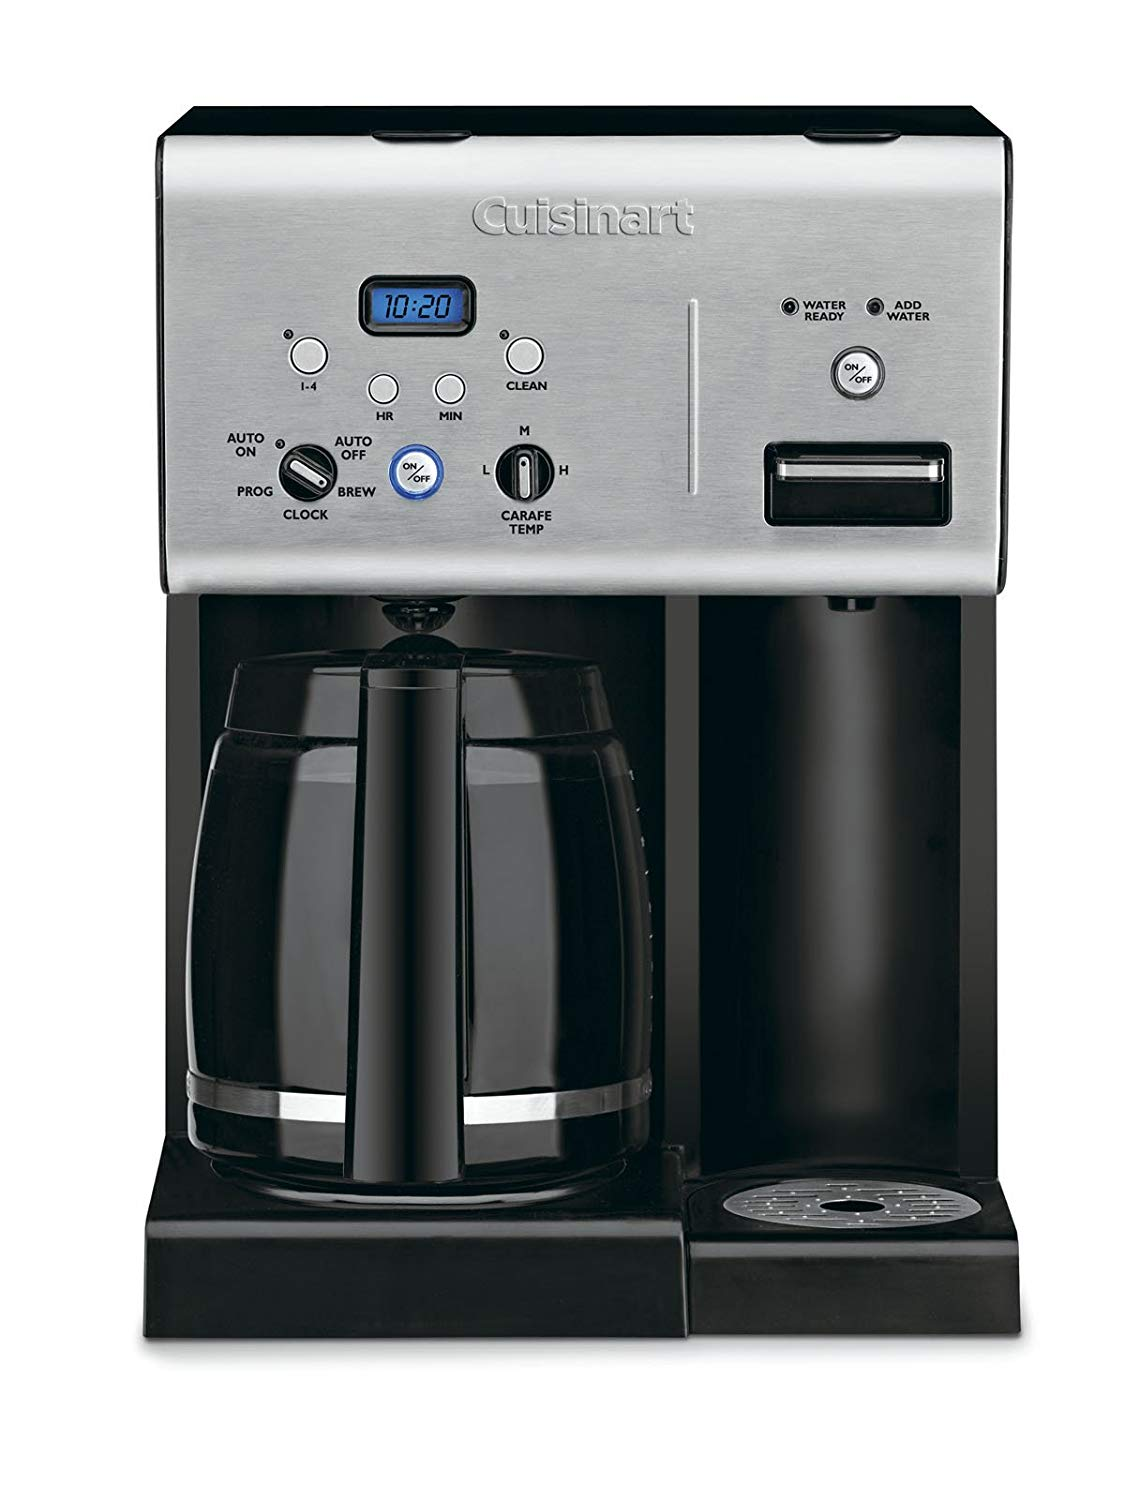 stainless steel 12 cup coffee maker